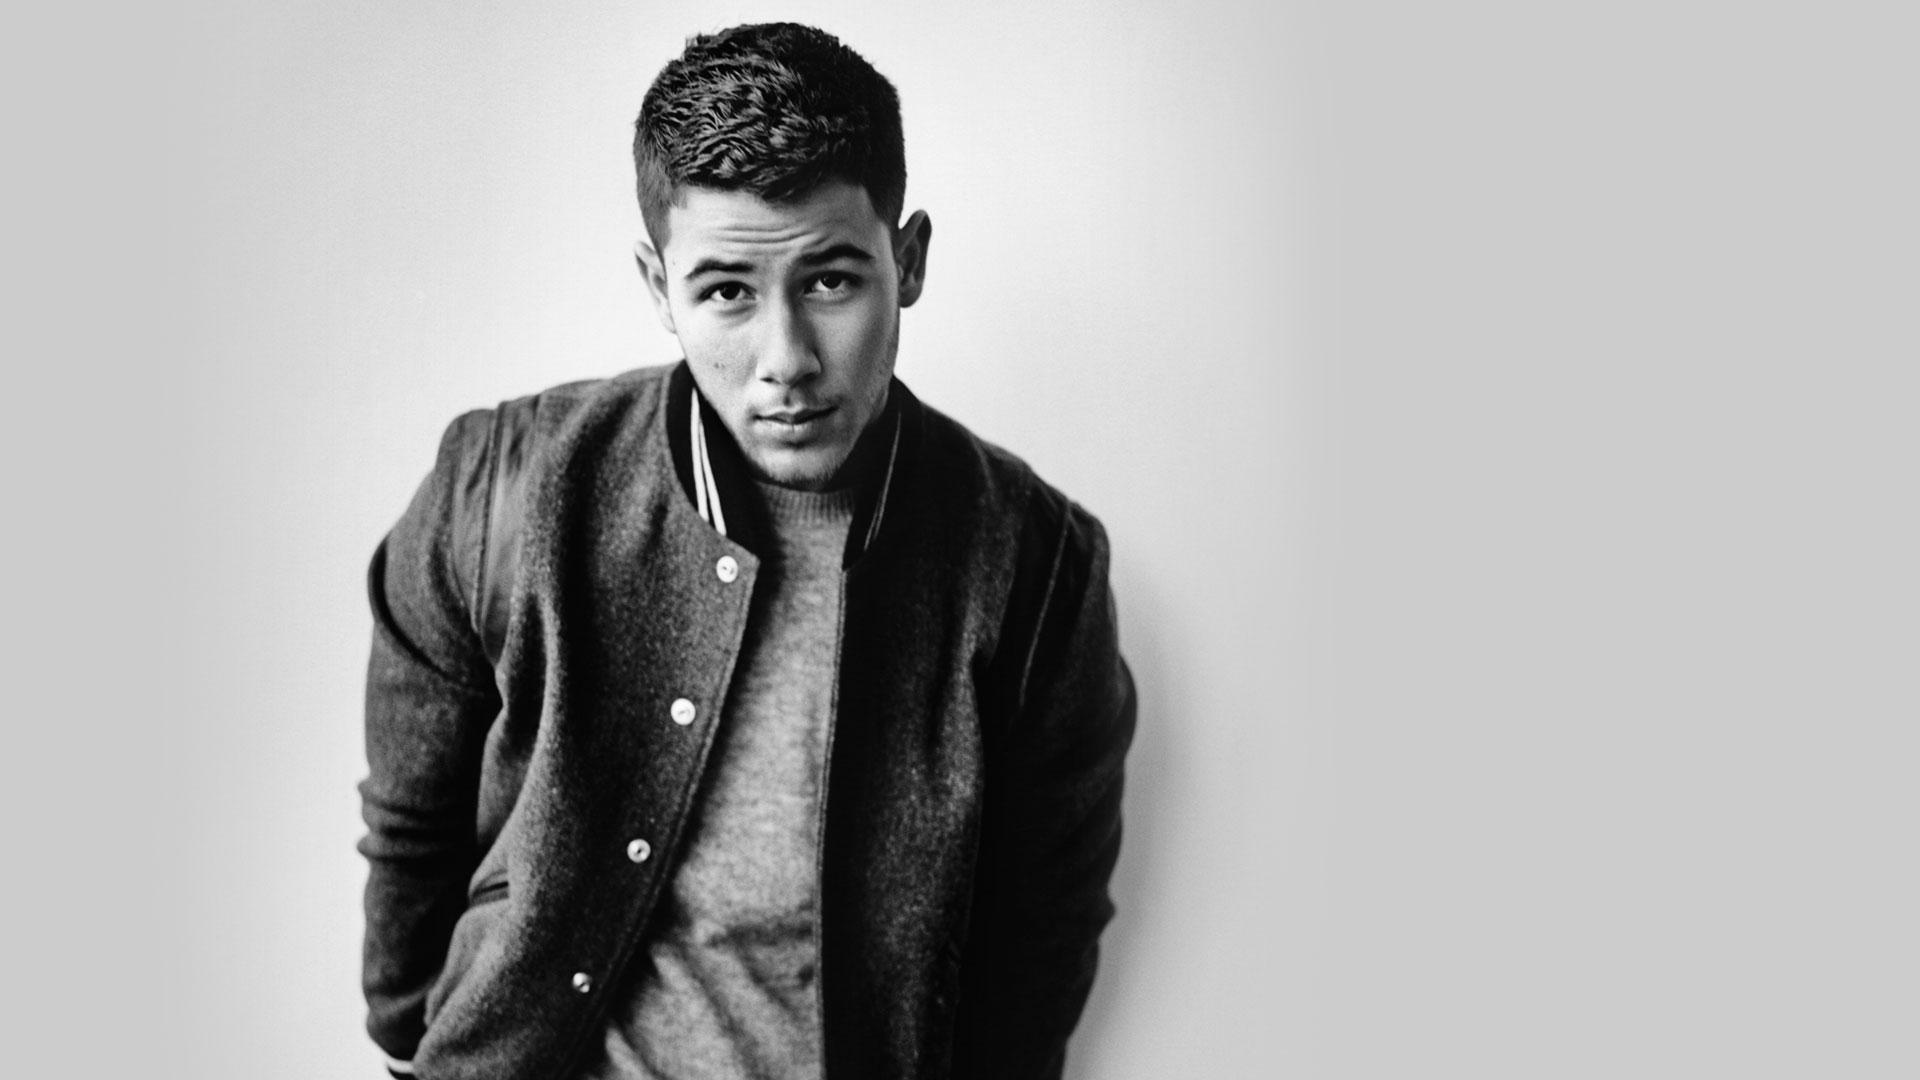 monochrome nick jonas wallpaper 59705